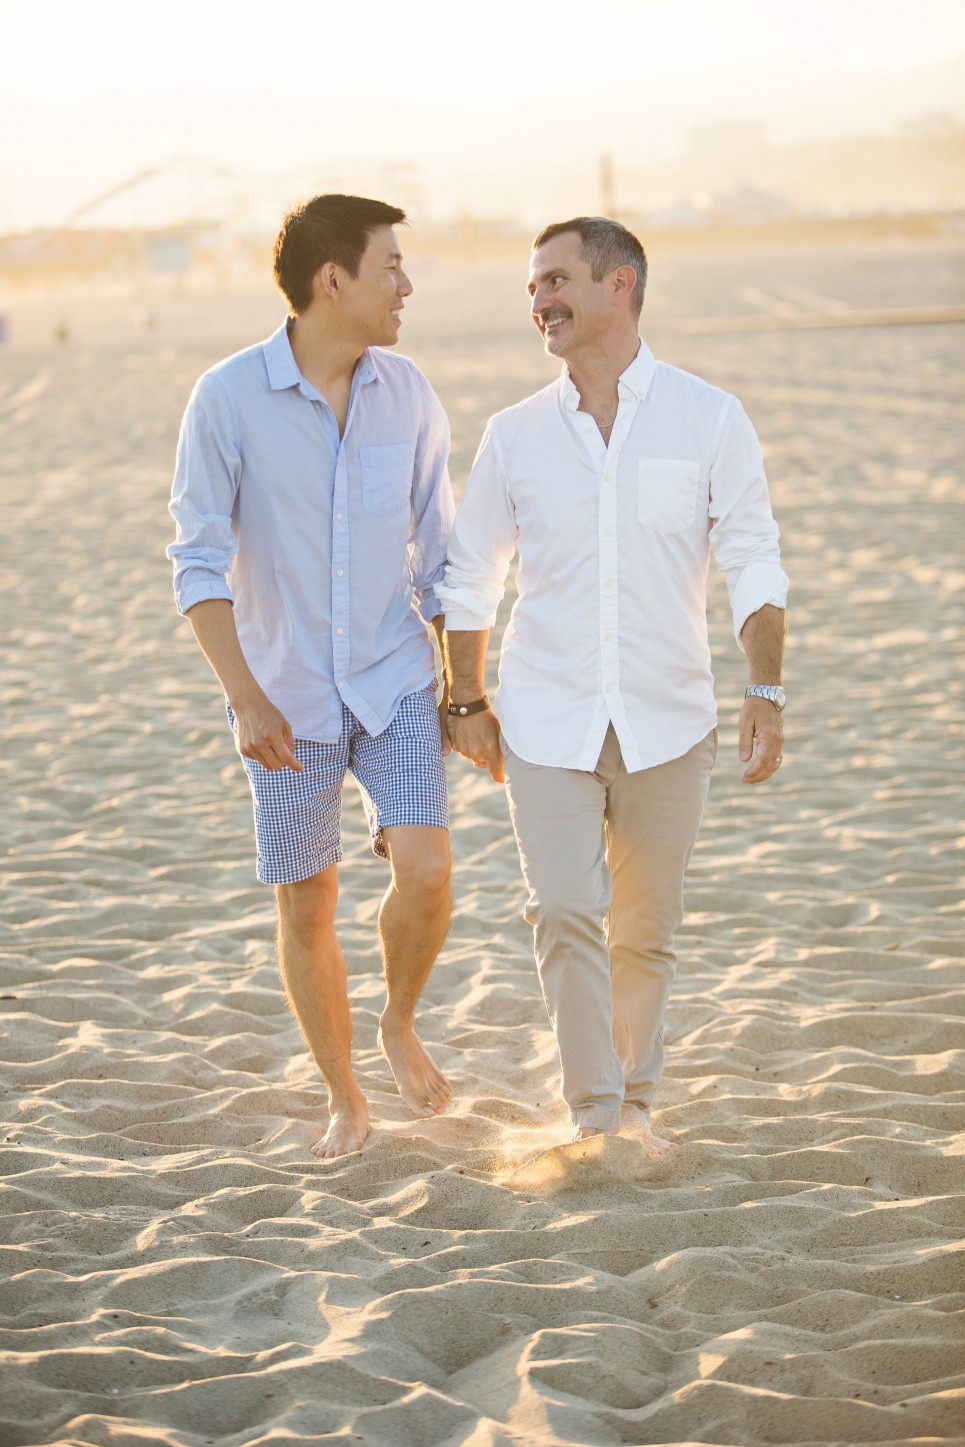 johnny-michael-santa-monica-beach-engagement-lgbt-table4-006 by Jason Huang, Table4.